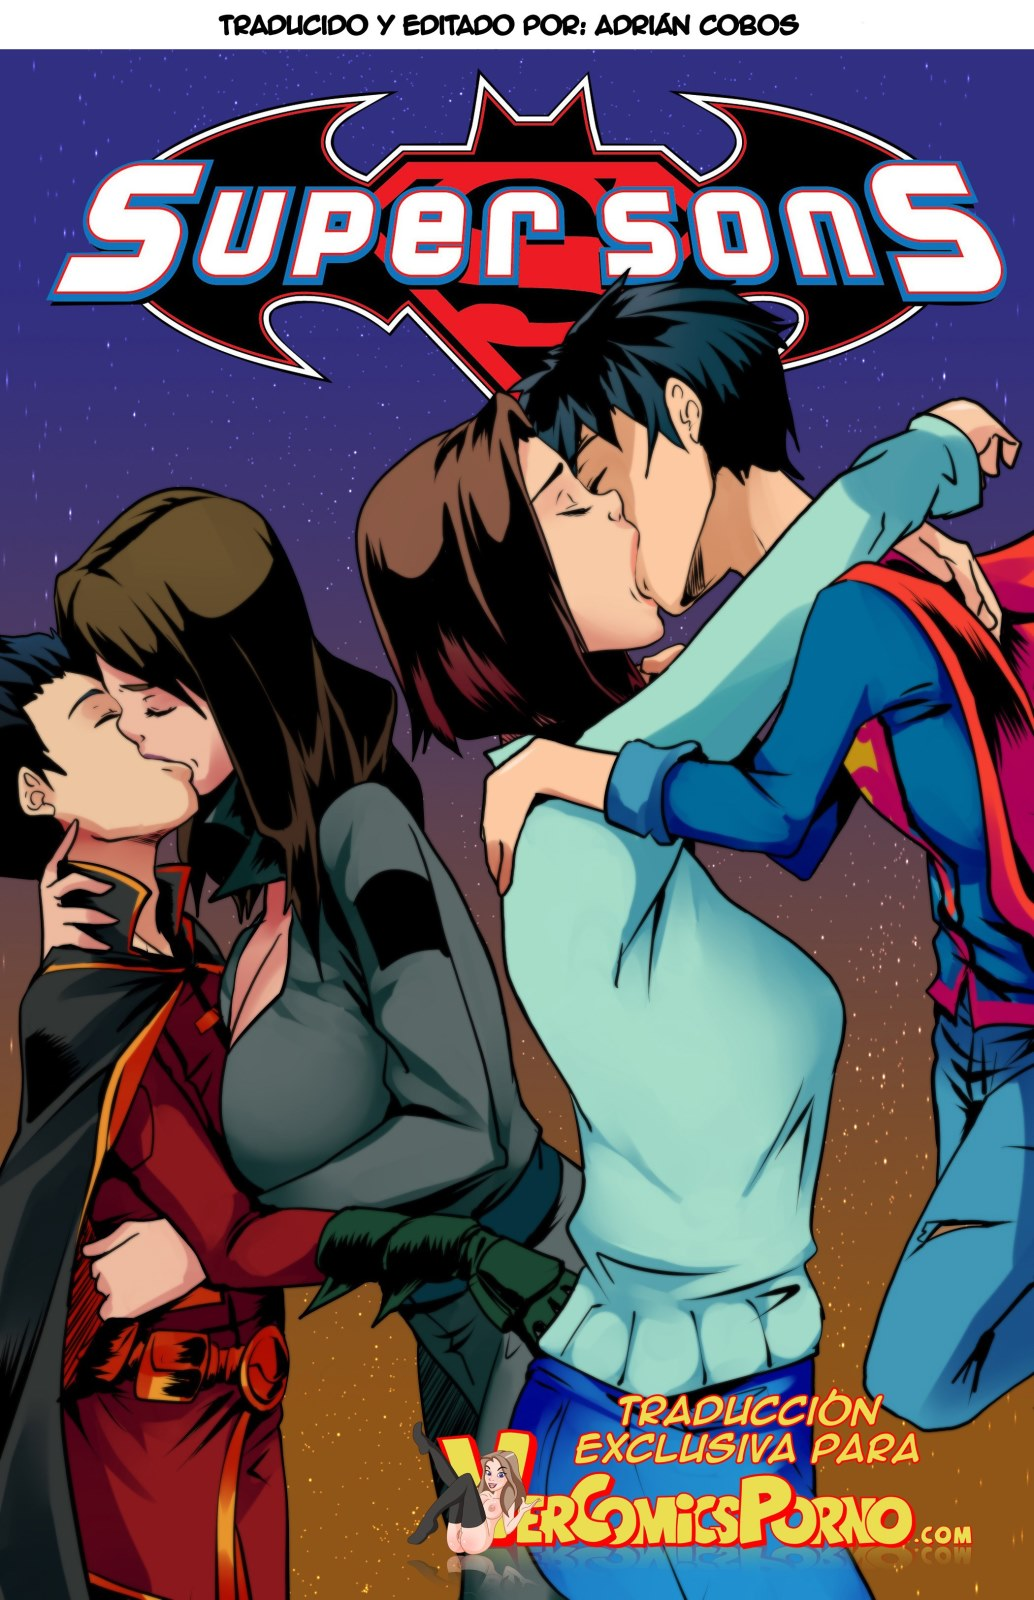 superman and superwoman hardcore sex nudity